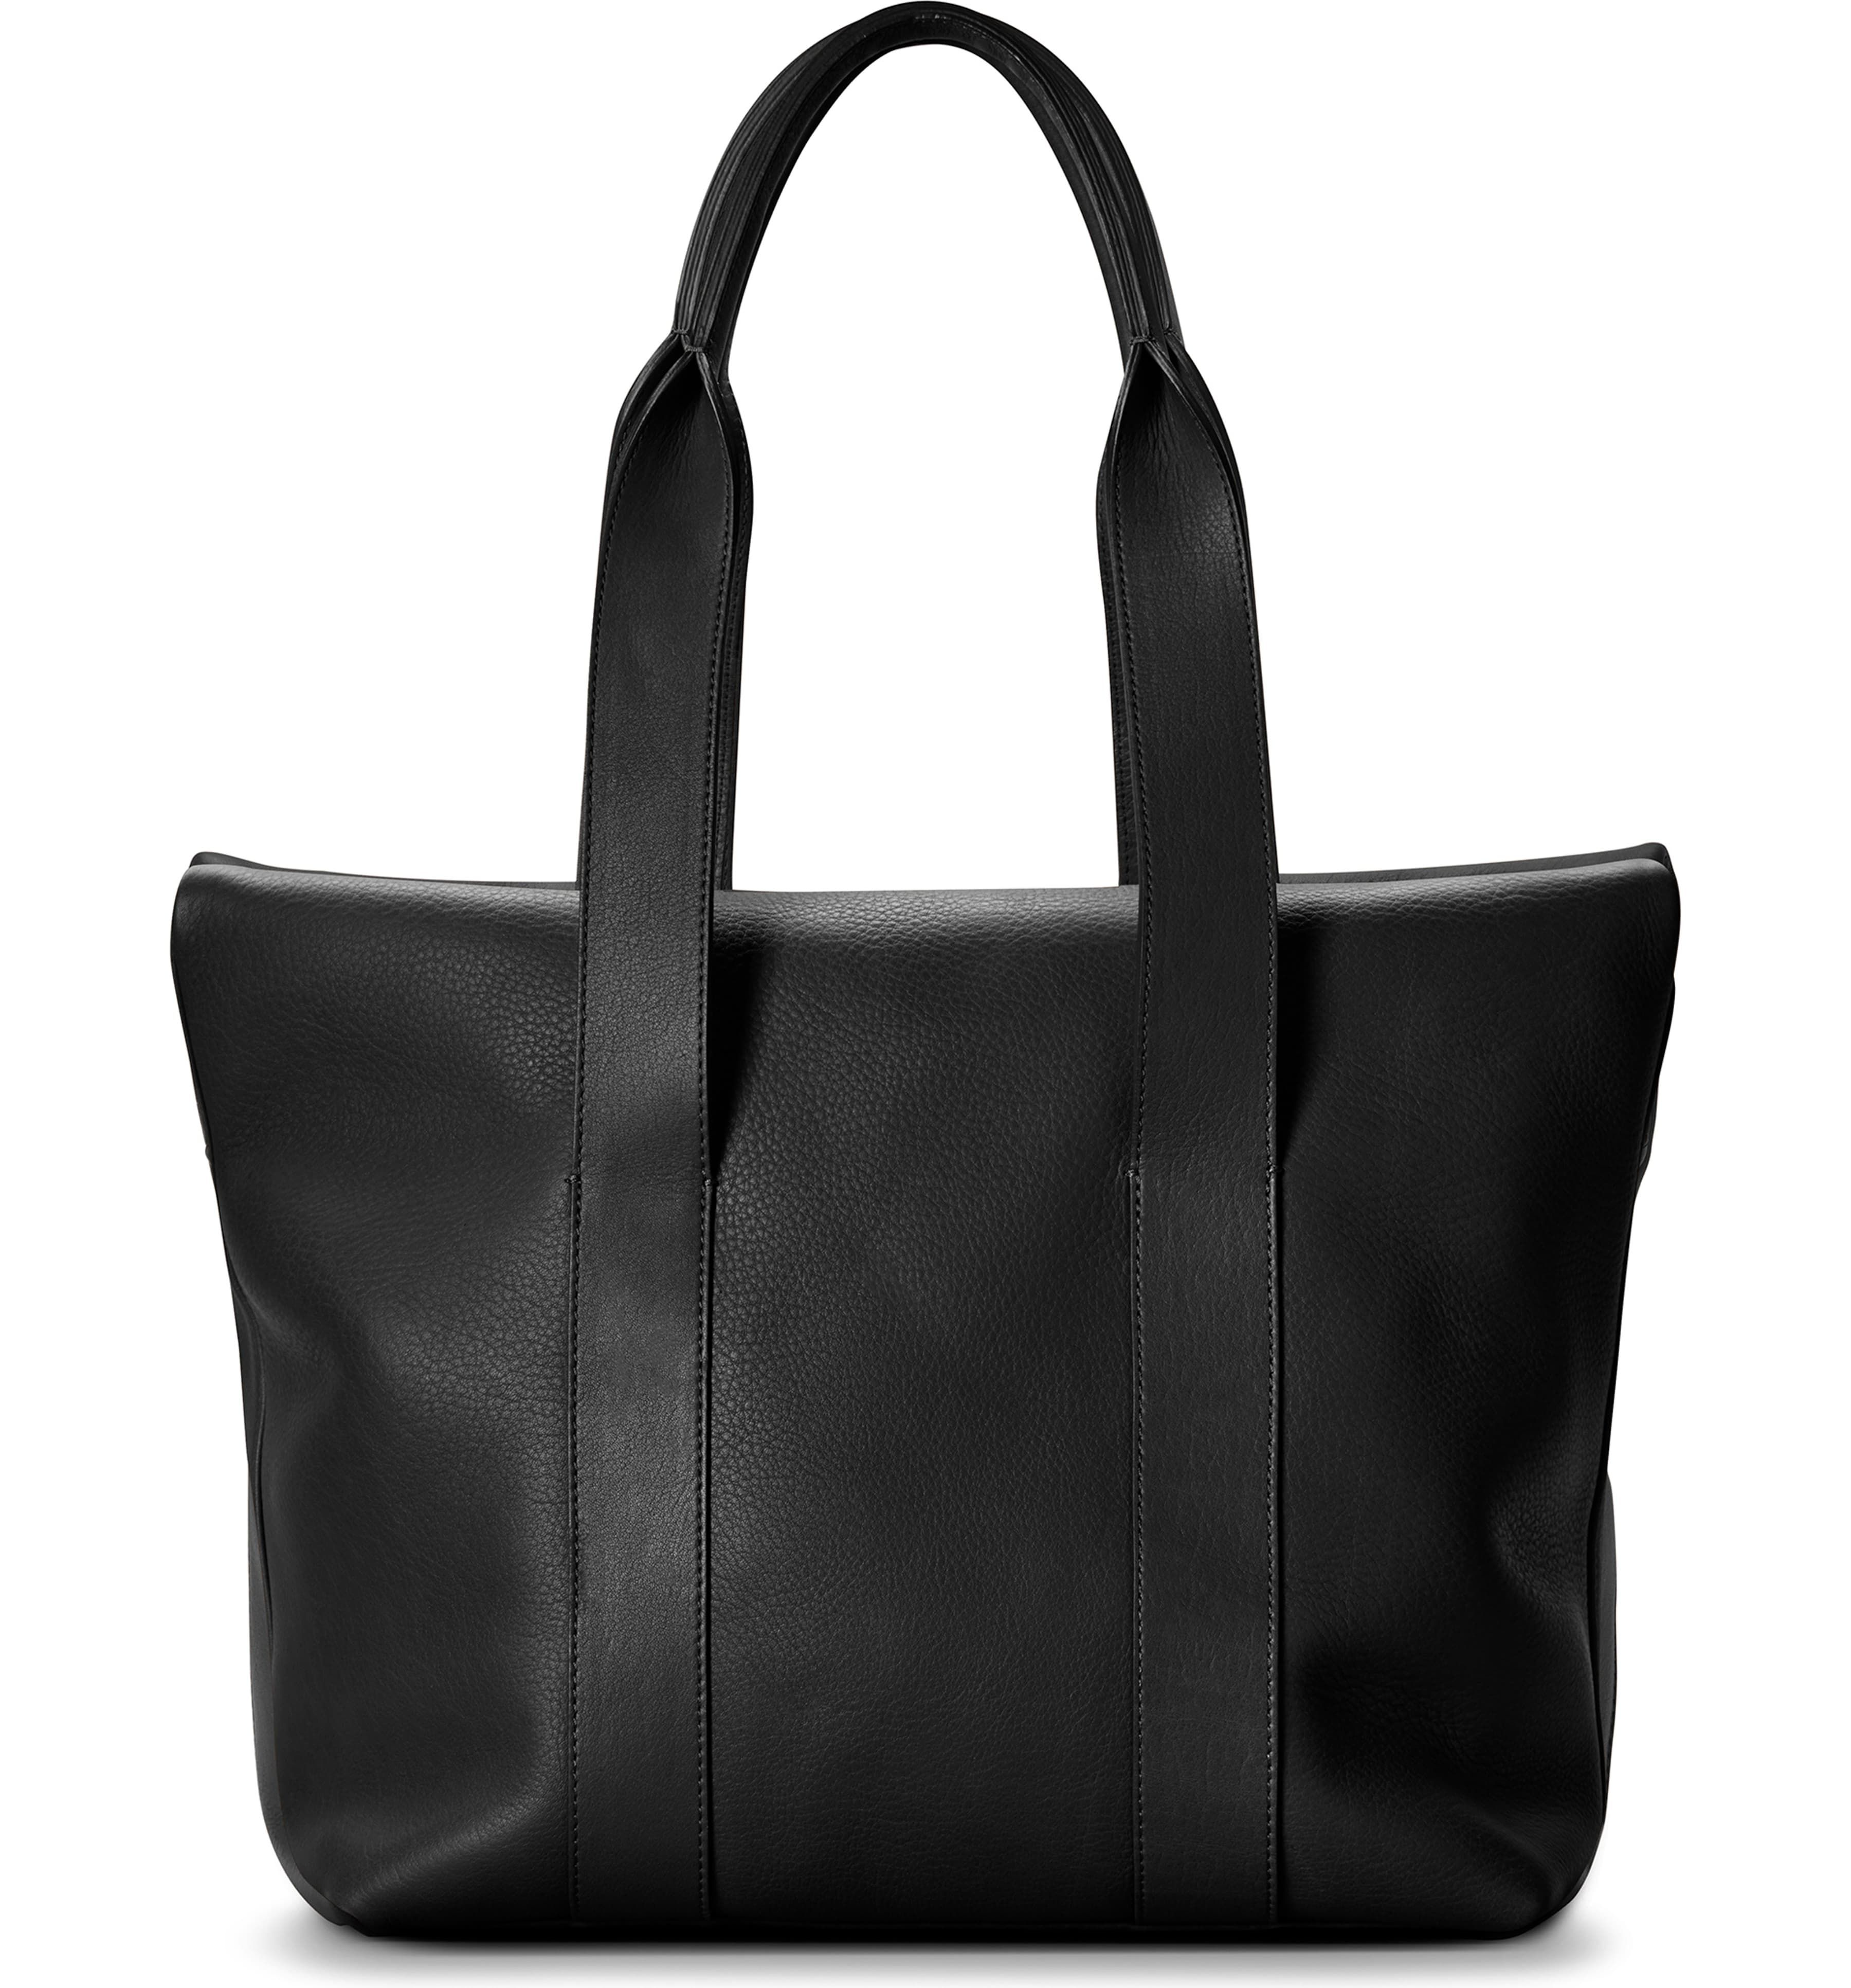 Shinola Cass Leather Tote | Leather, Nordstrom, Tote bag